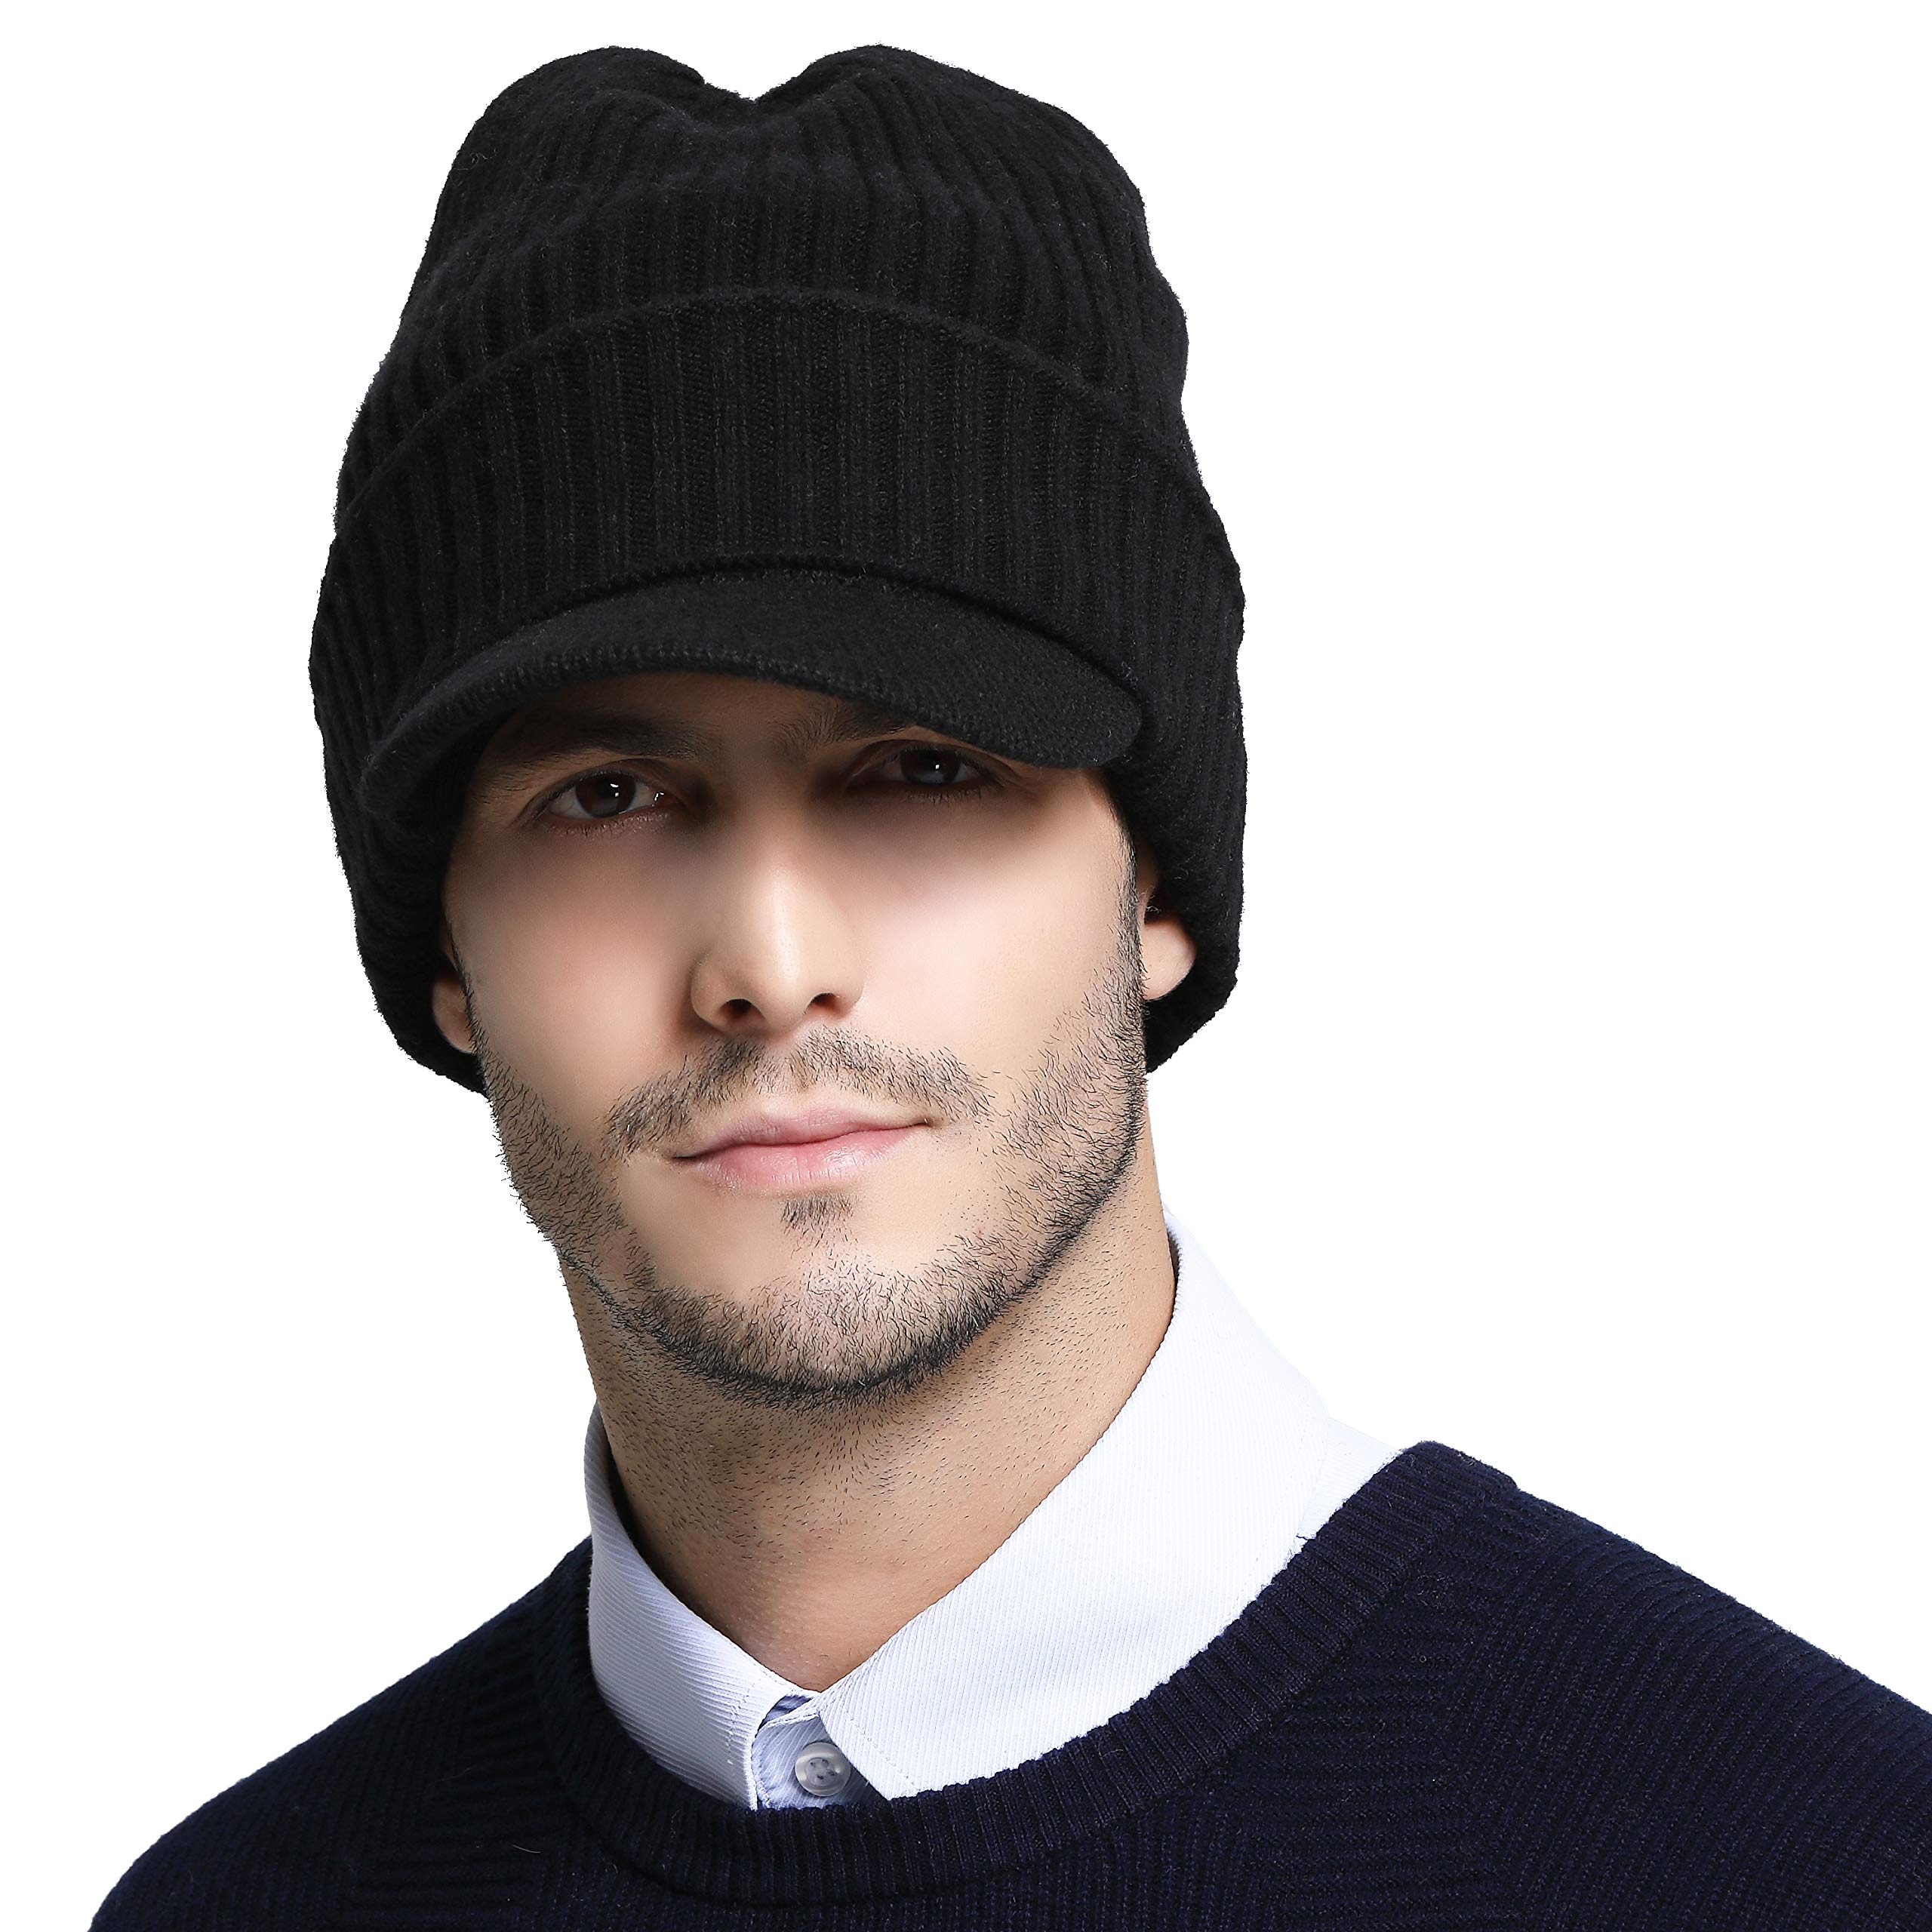 4973ca1403efc8 RIONA Men's Soild 100% Australian Merino Wool Knit Cuffed Visor Beanie Hat  with Visor Warm Skull Caps Headwear (Black)